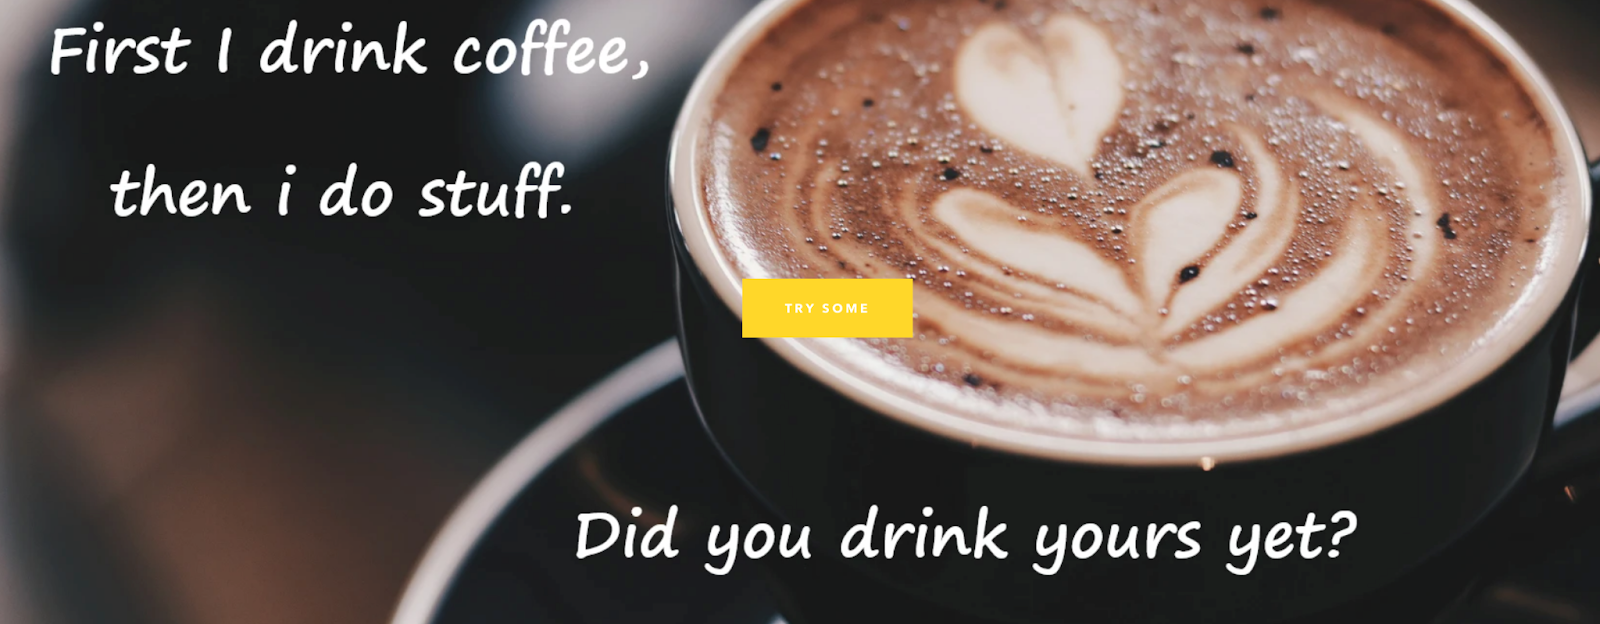 Phoenix Rising Coffee | Top Brands Featured on Afluencer